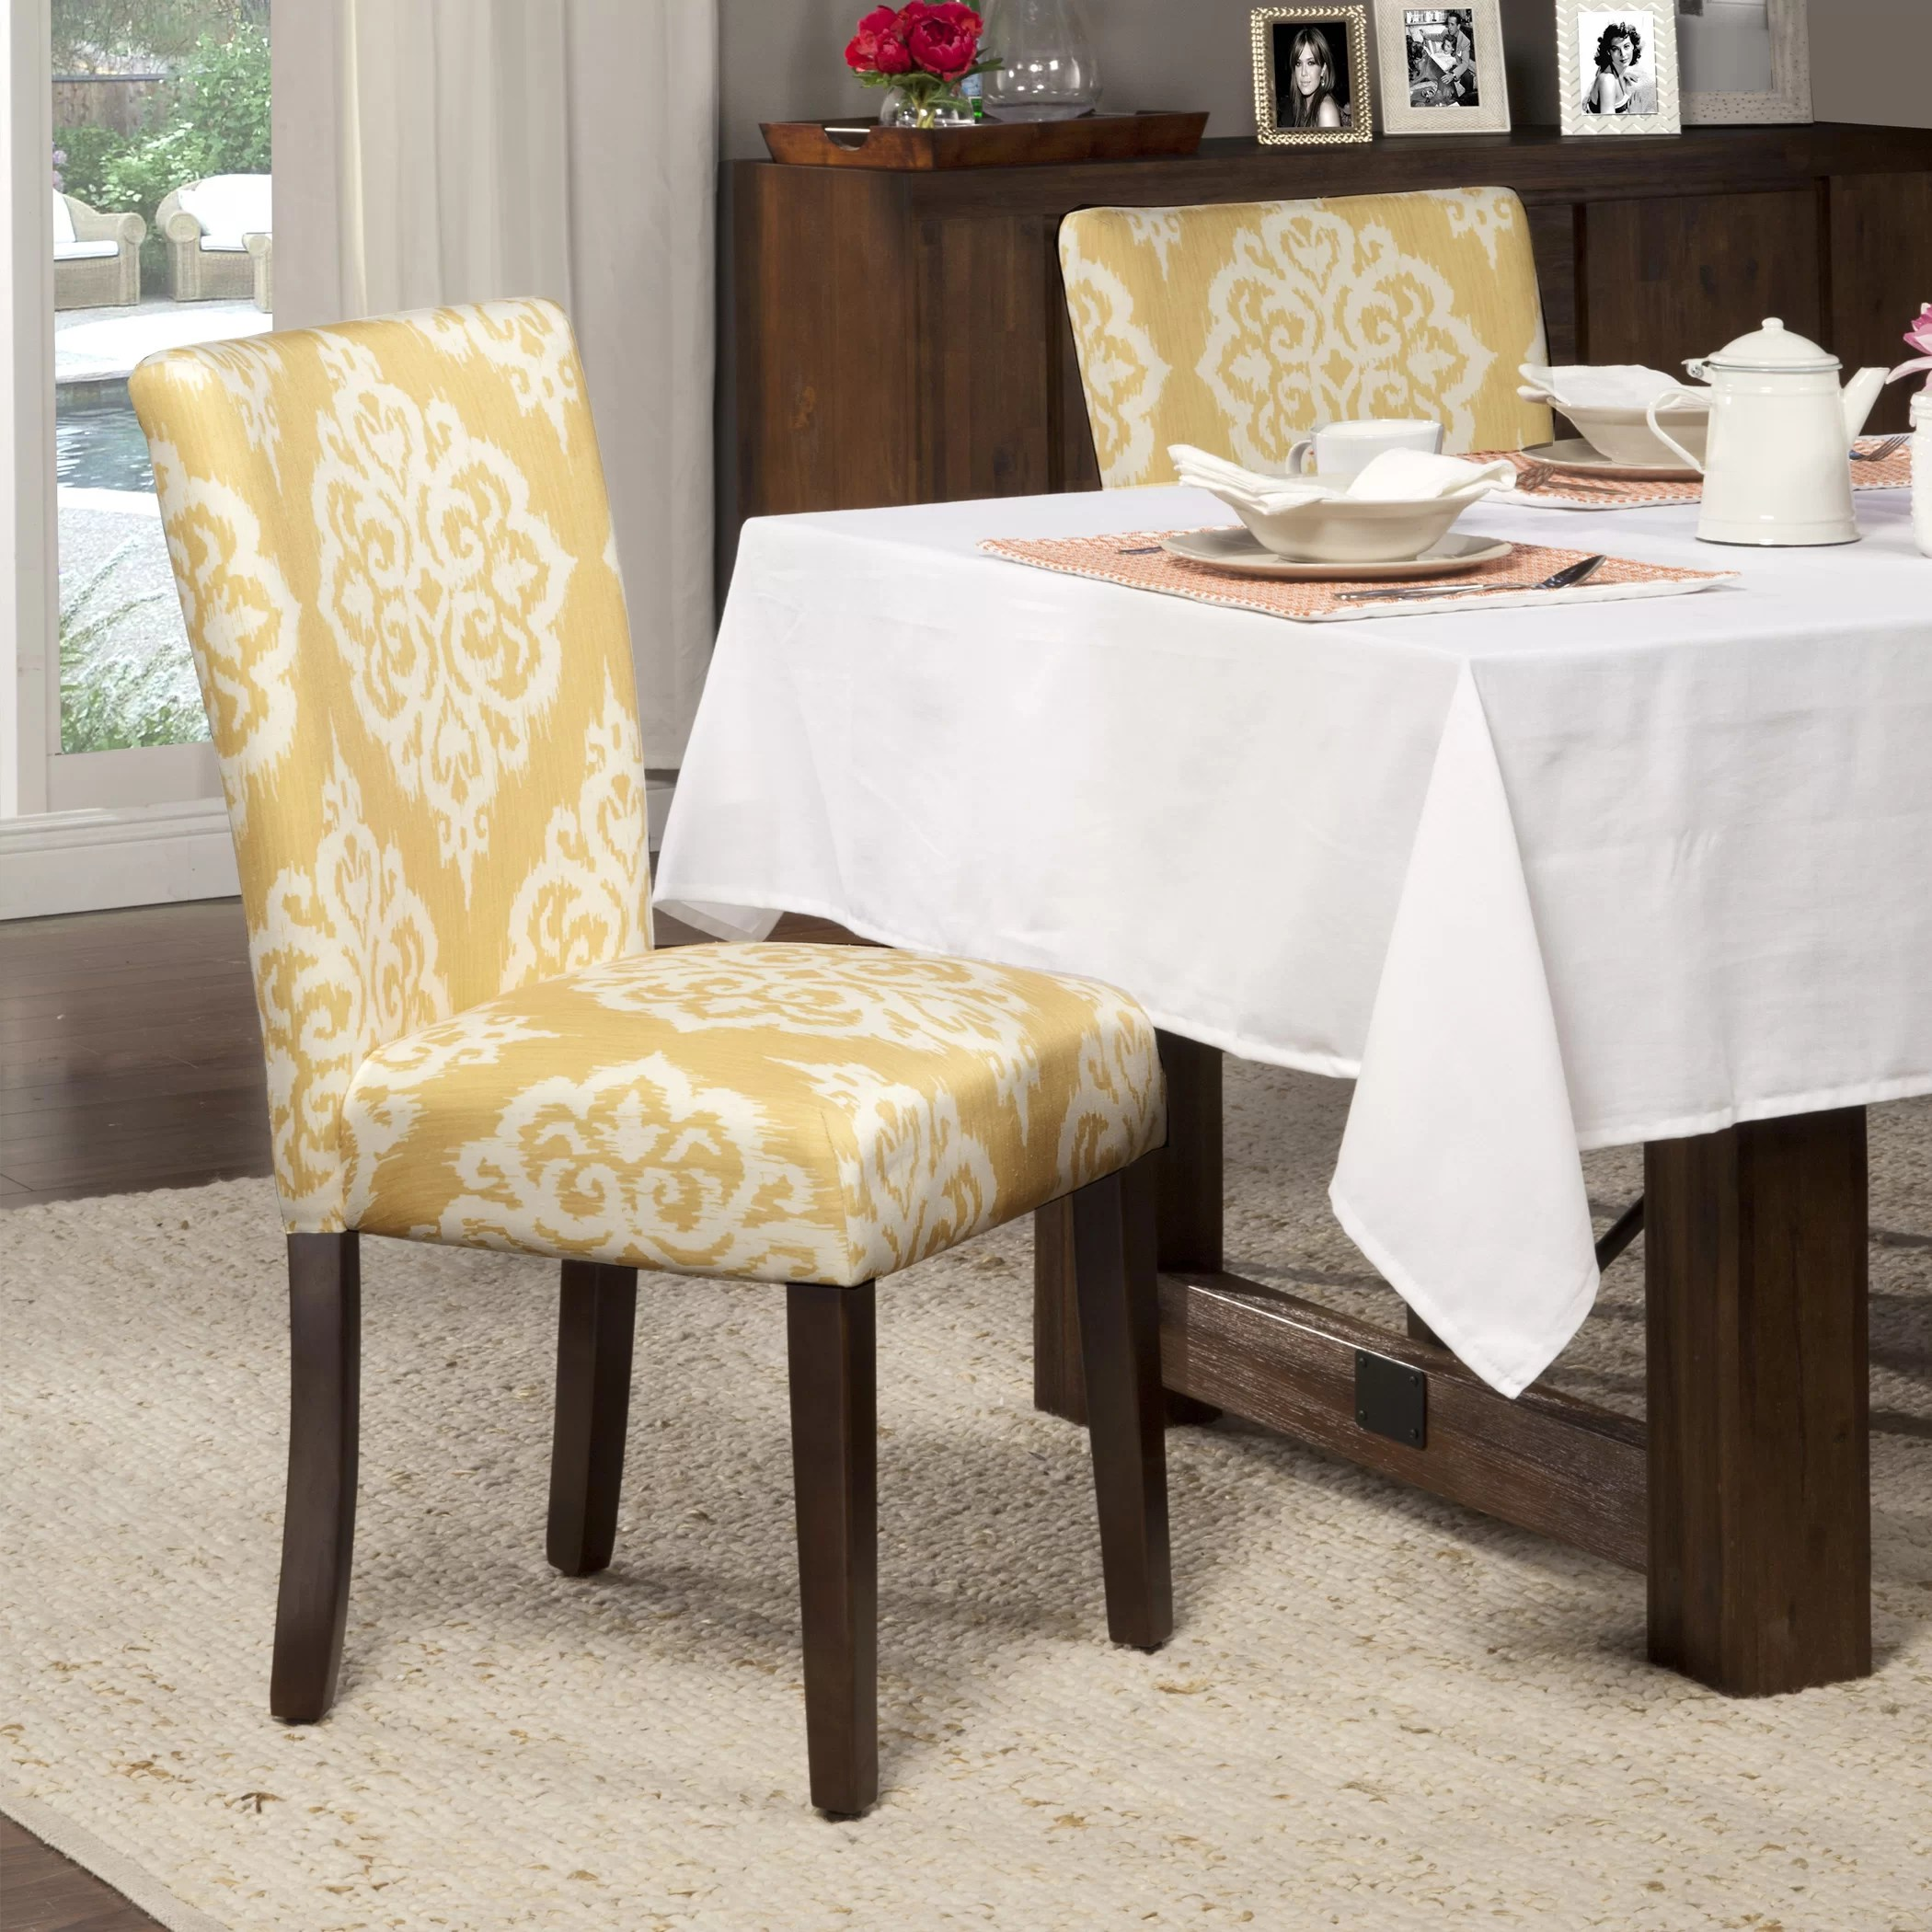 yellow parsons chair baby swing argos bungalow rose natane and cream damask